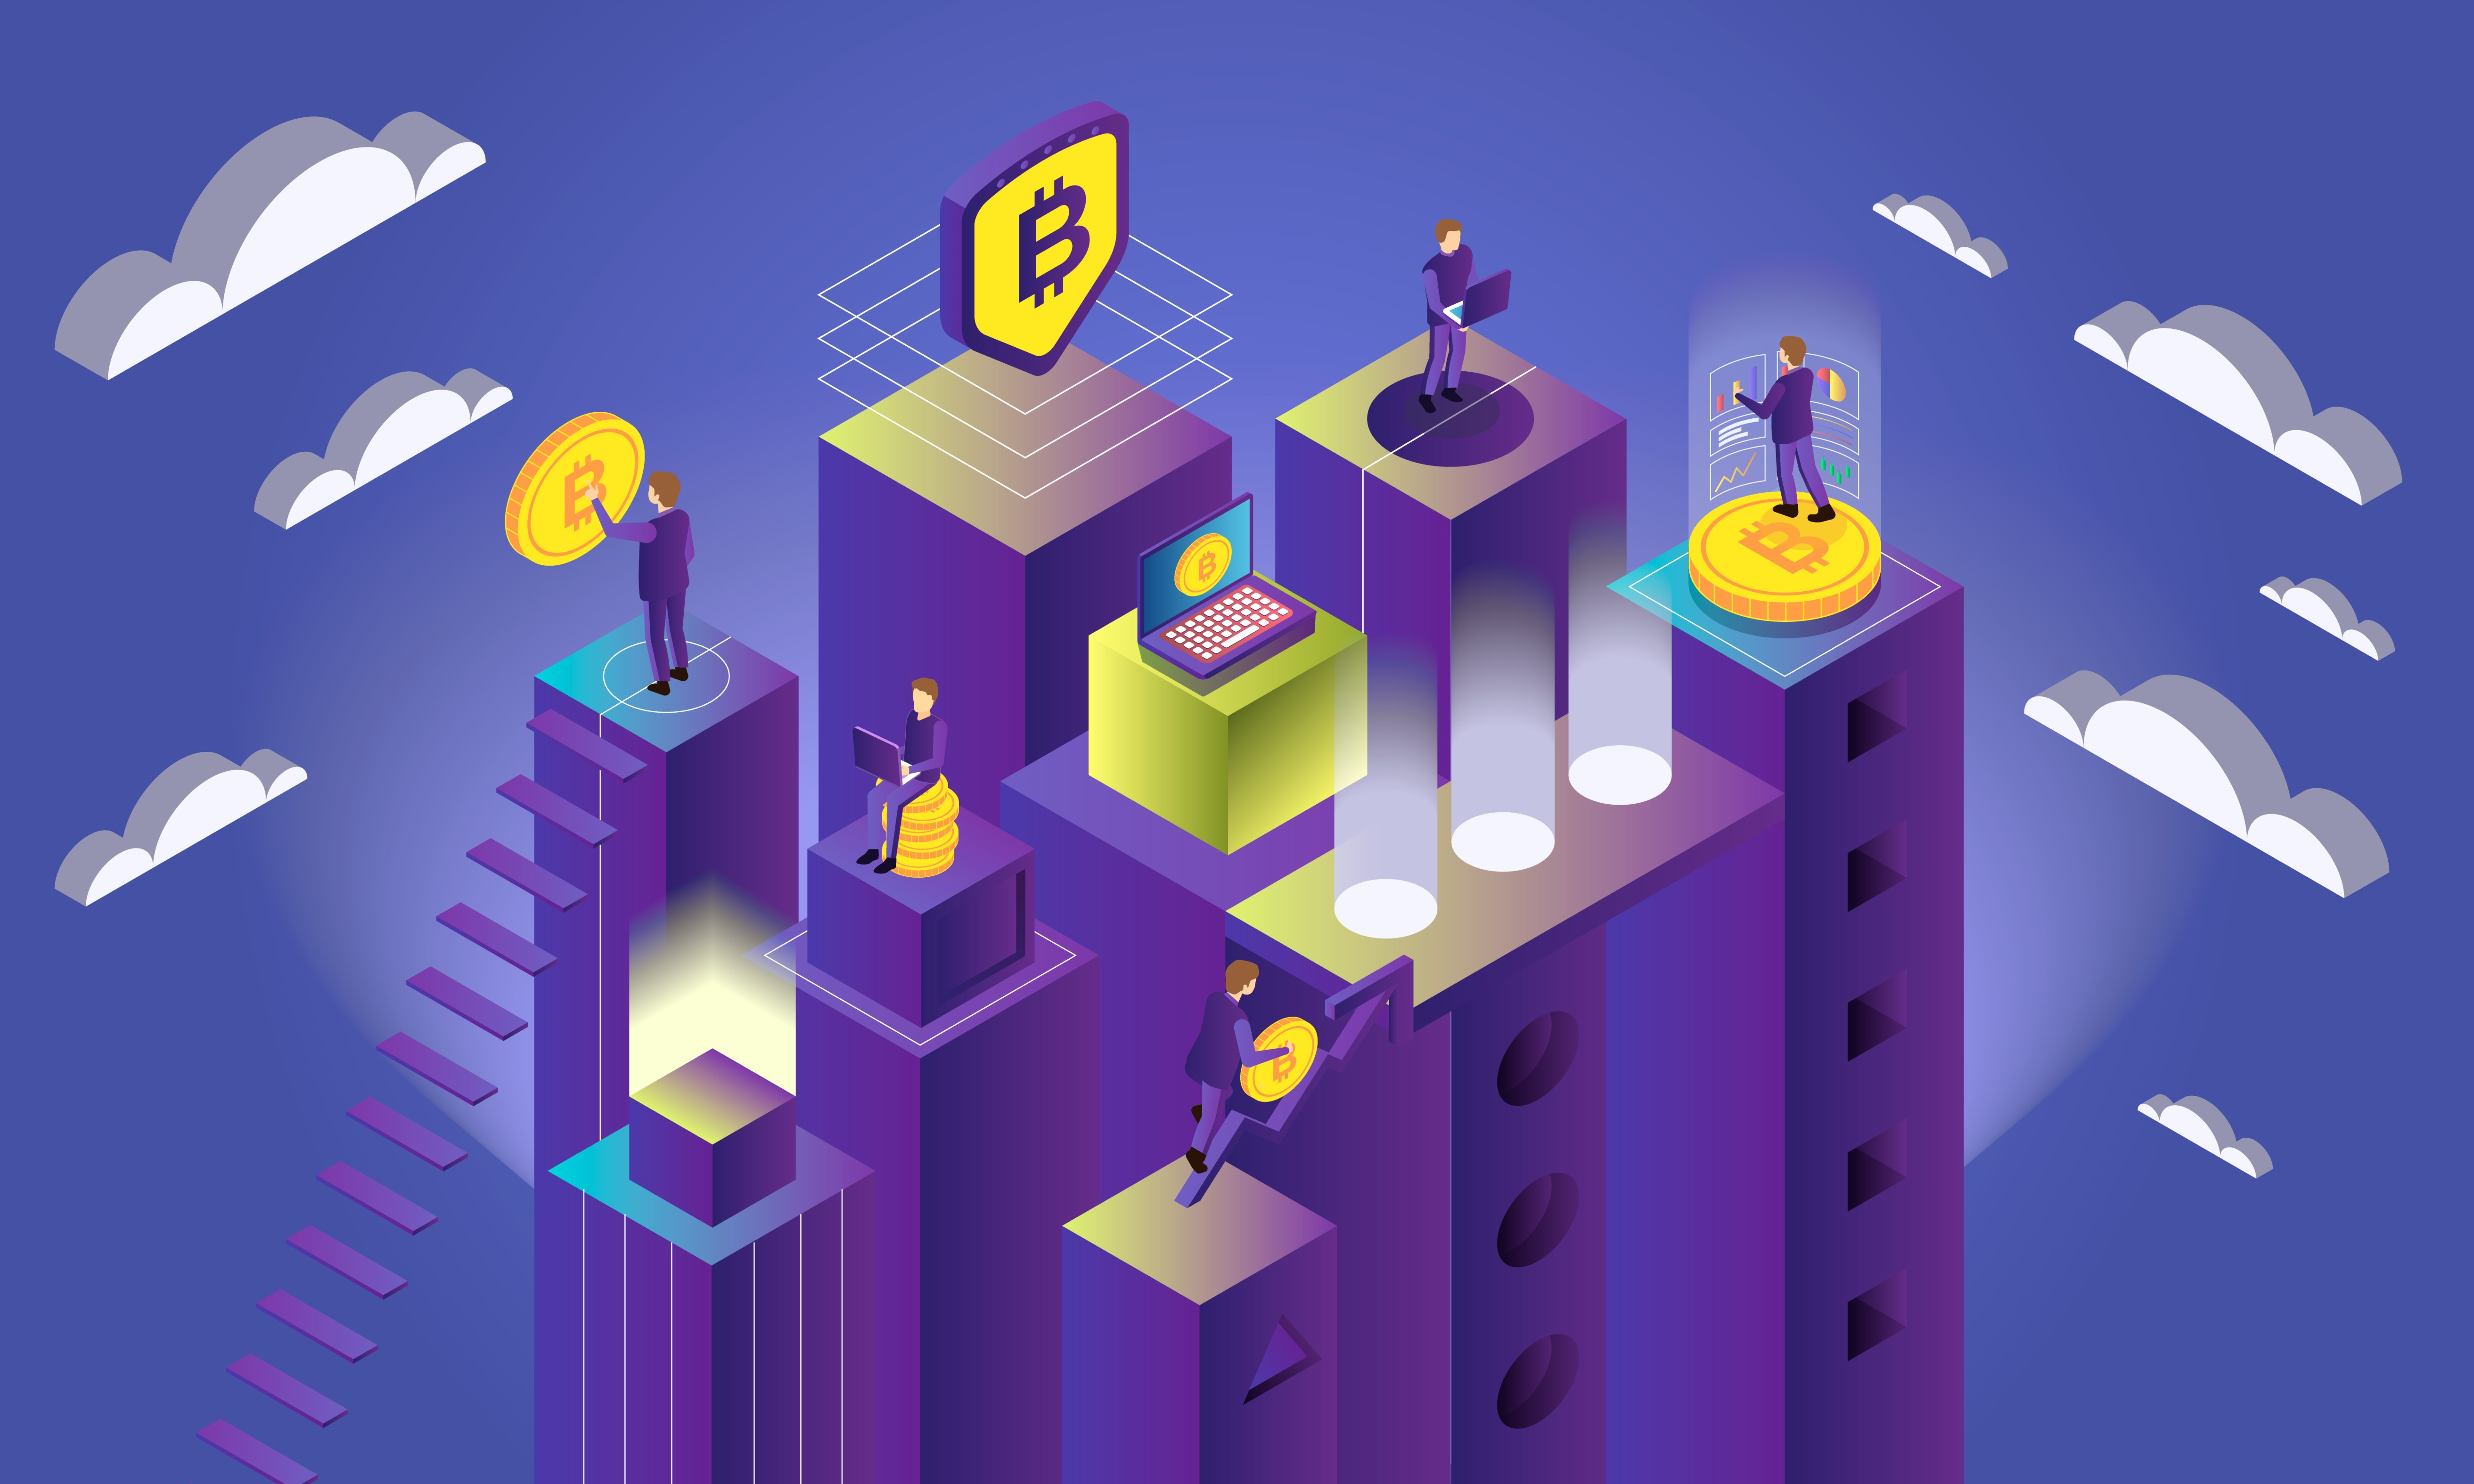 HOW BLOCKCHAIN AND CRYPTOCURRENCY IS SHAPING UP THE FUTURE